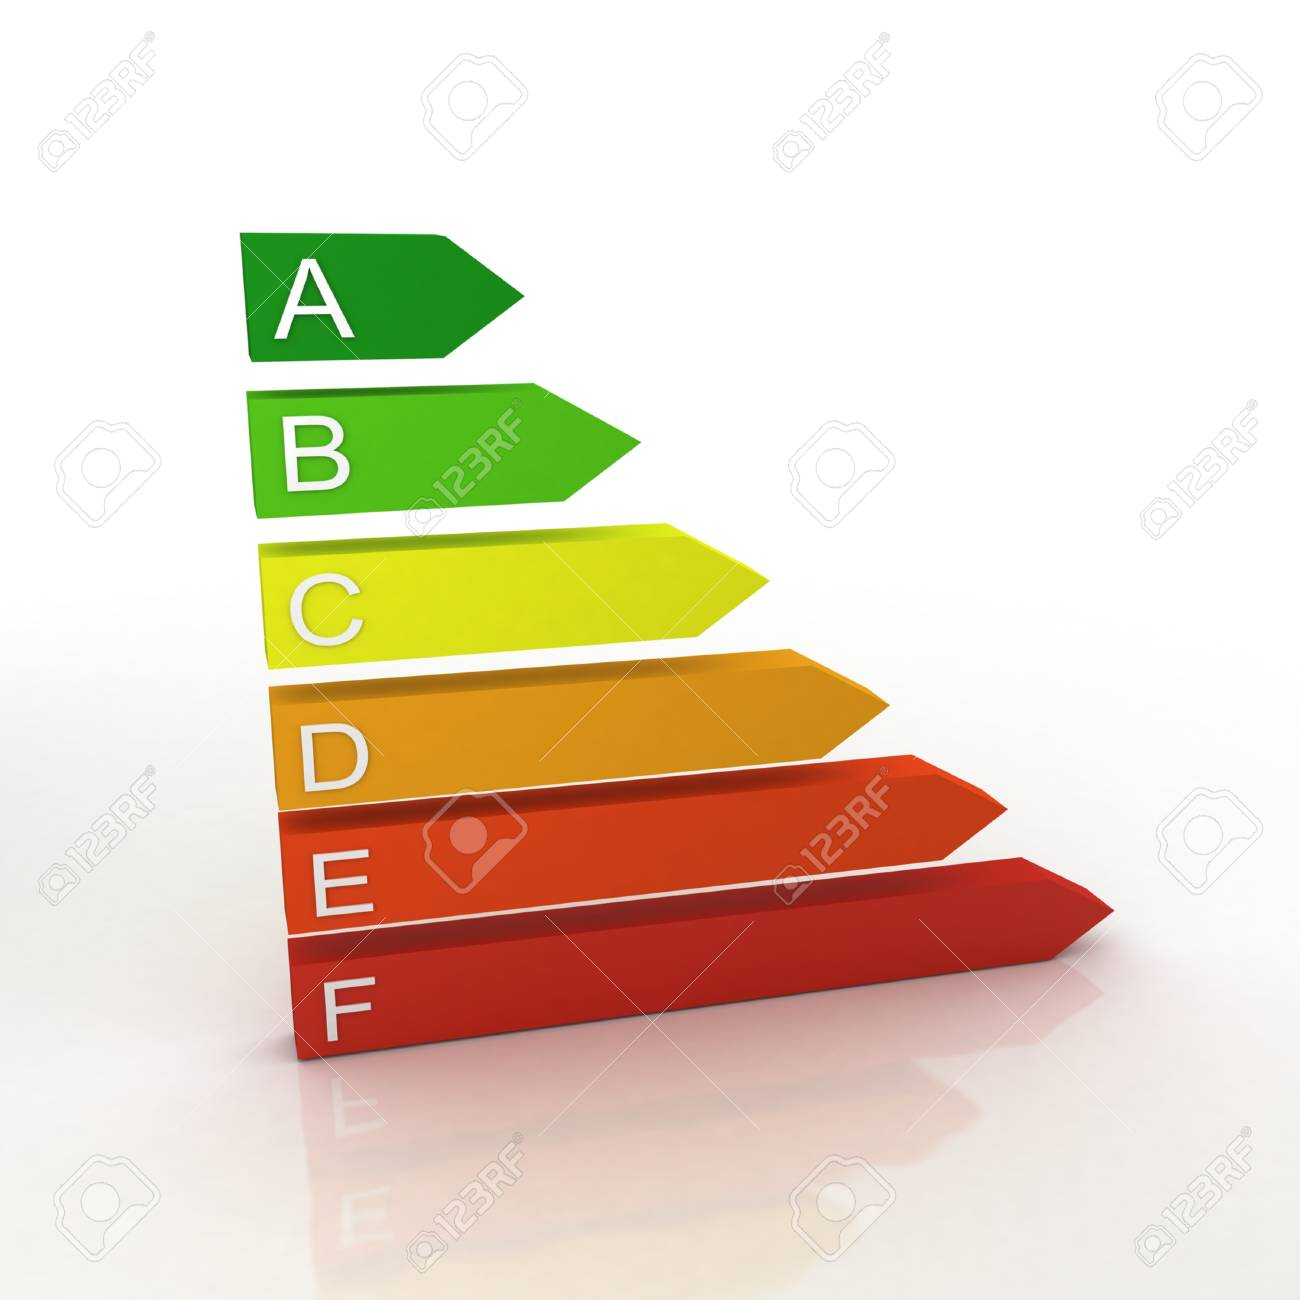 Energy saving concept Stock Photo - 11095475